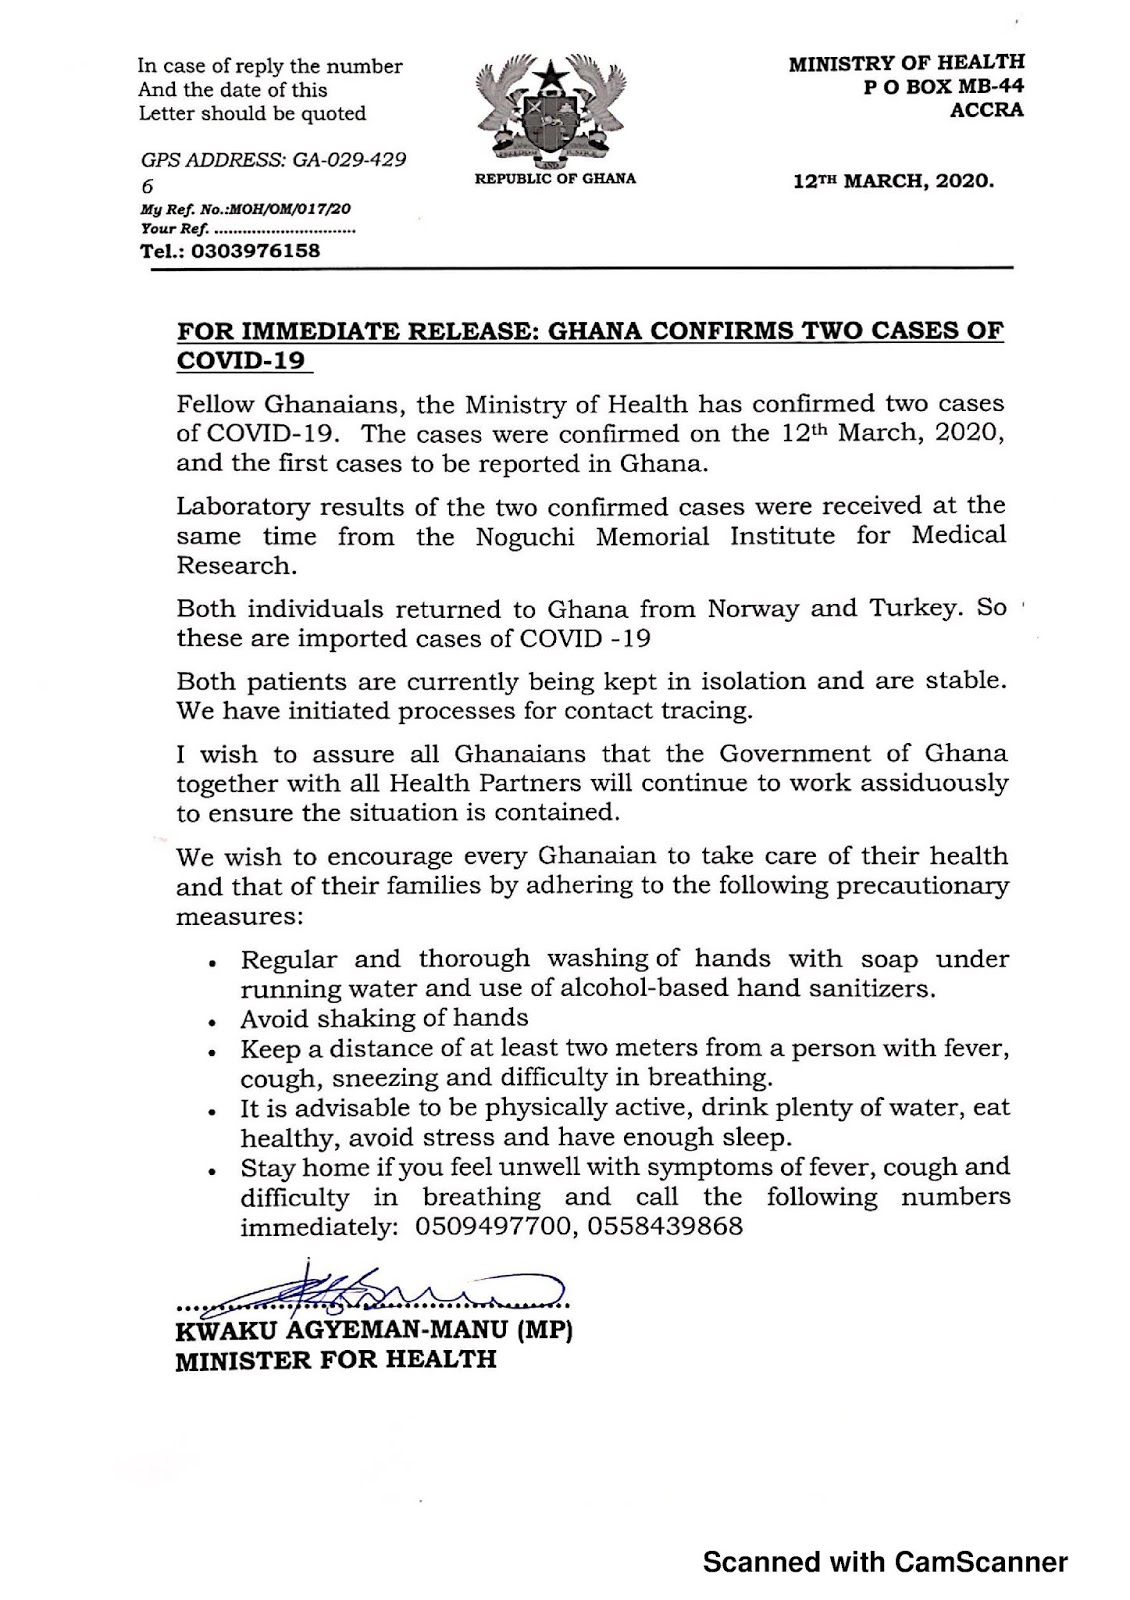 Coronavirus COVID-19 Cases in Ghana by Ministry of Health